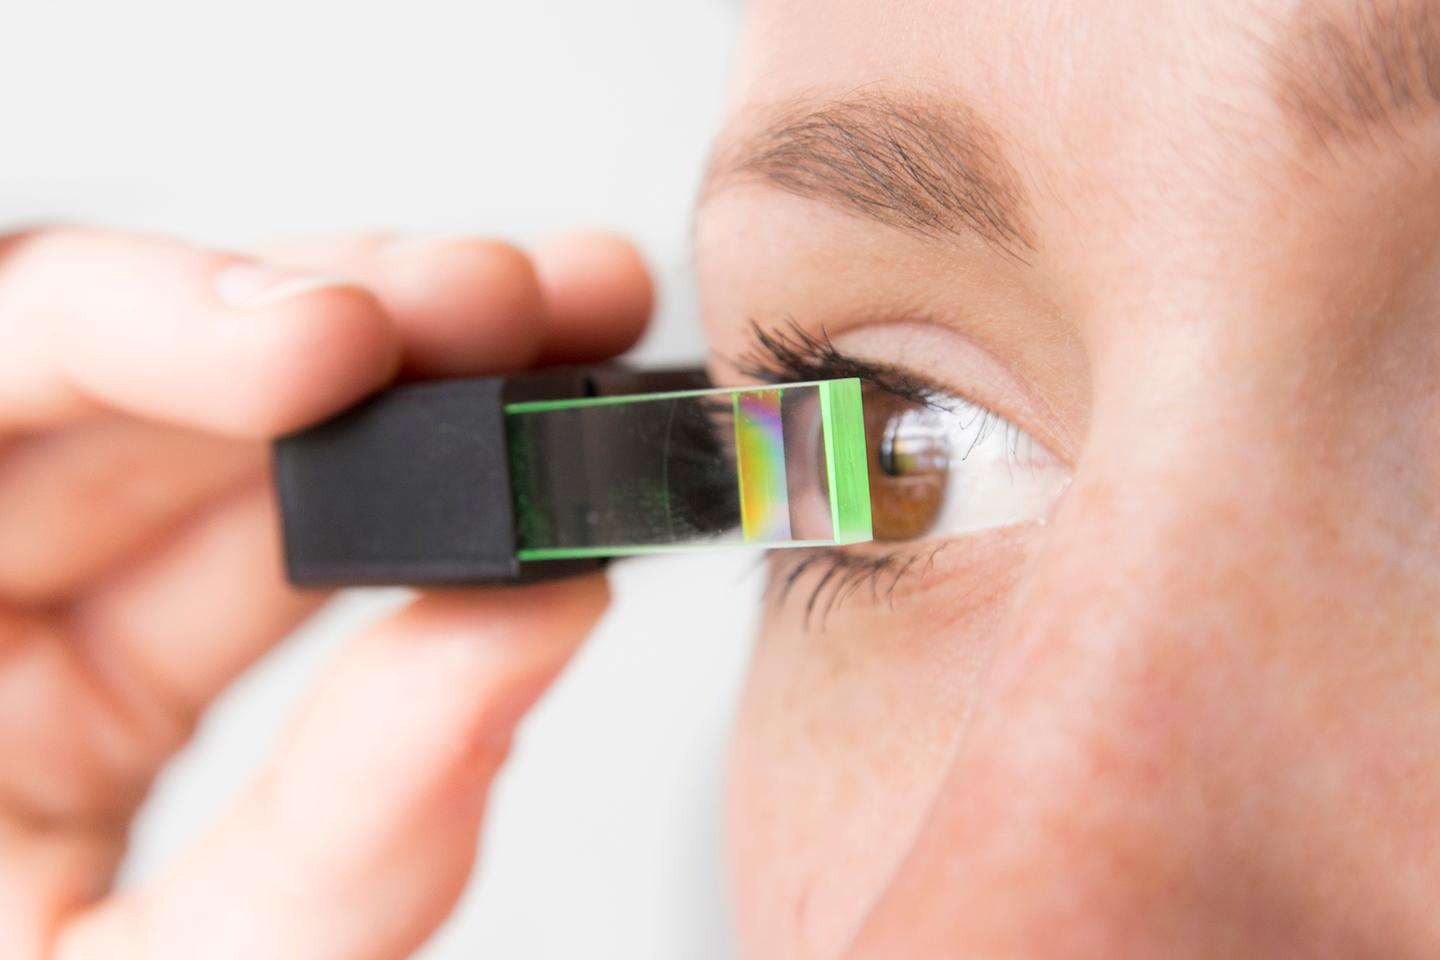 Fraunhofer researchers have developed technology that allows for a more compact, less conspicuous smartglasses design